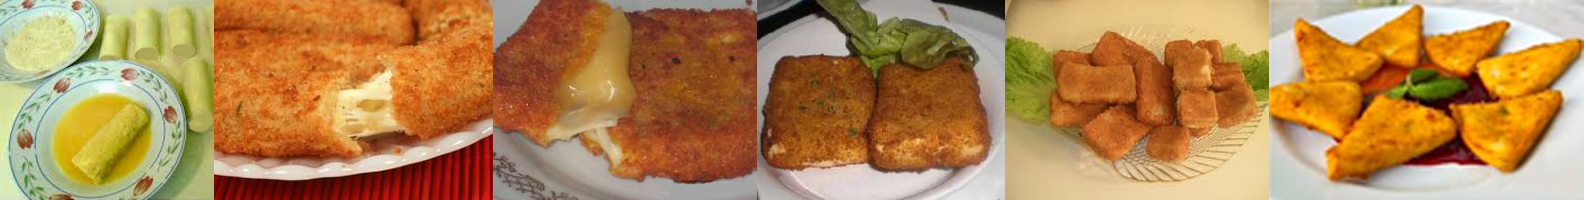 Fried-breaded-cheese